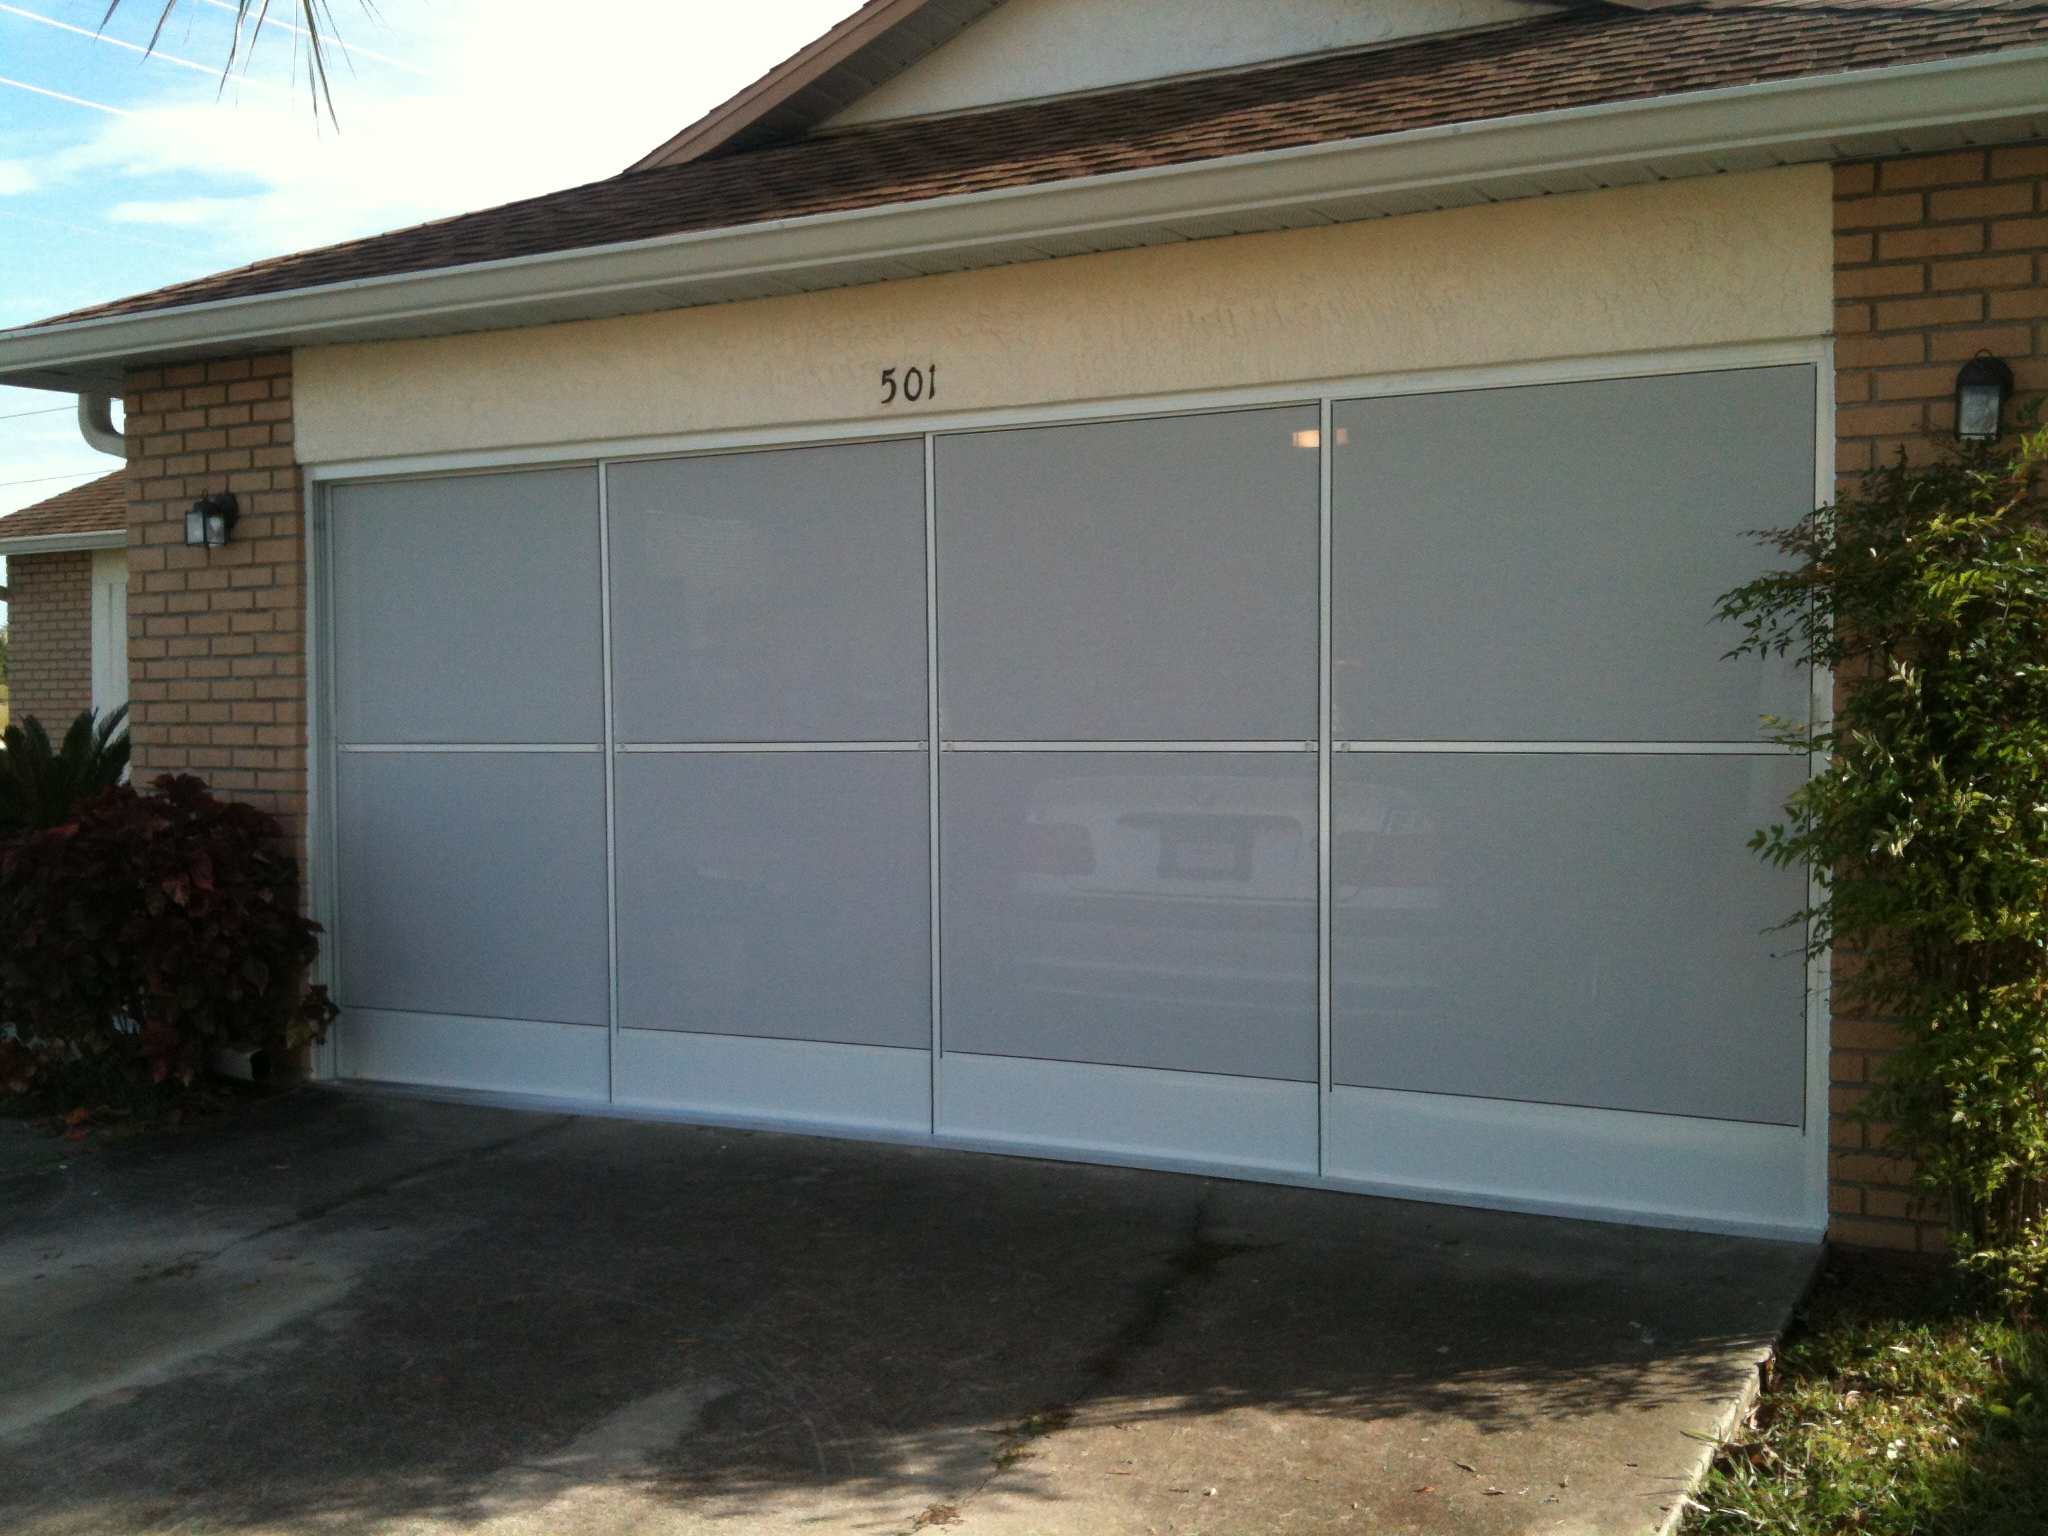 Garage screen door with white screen